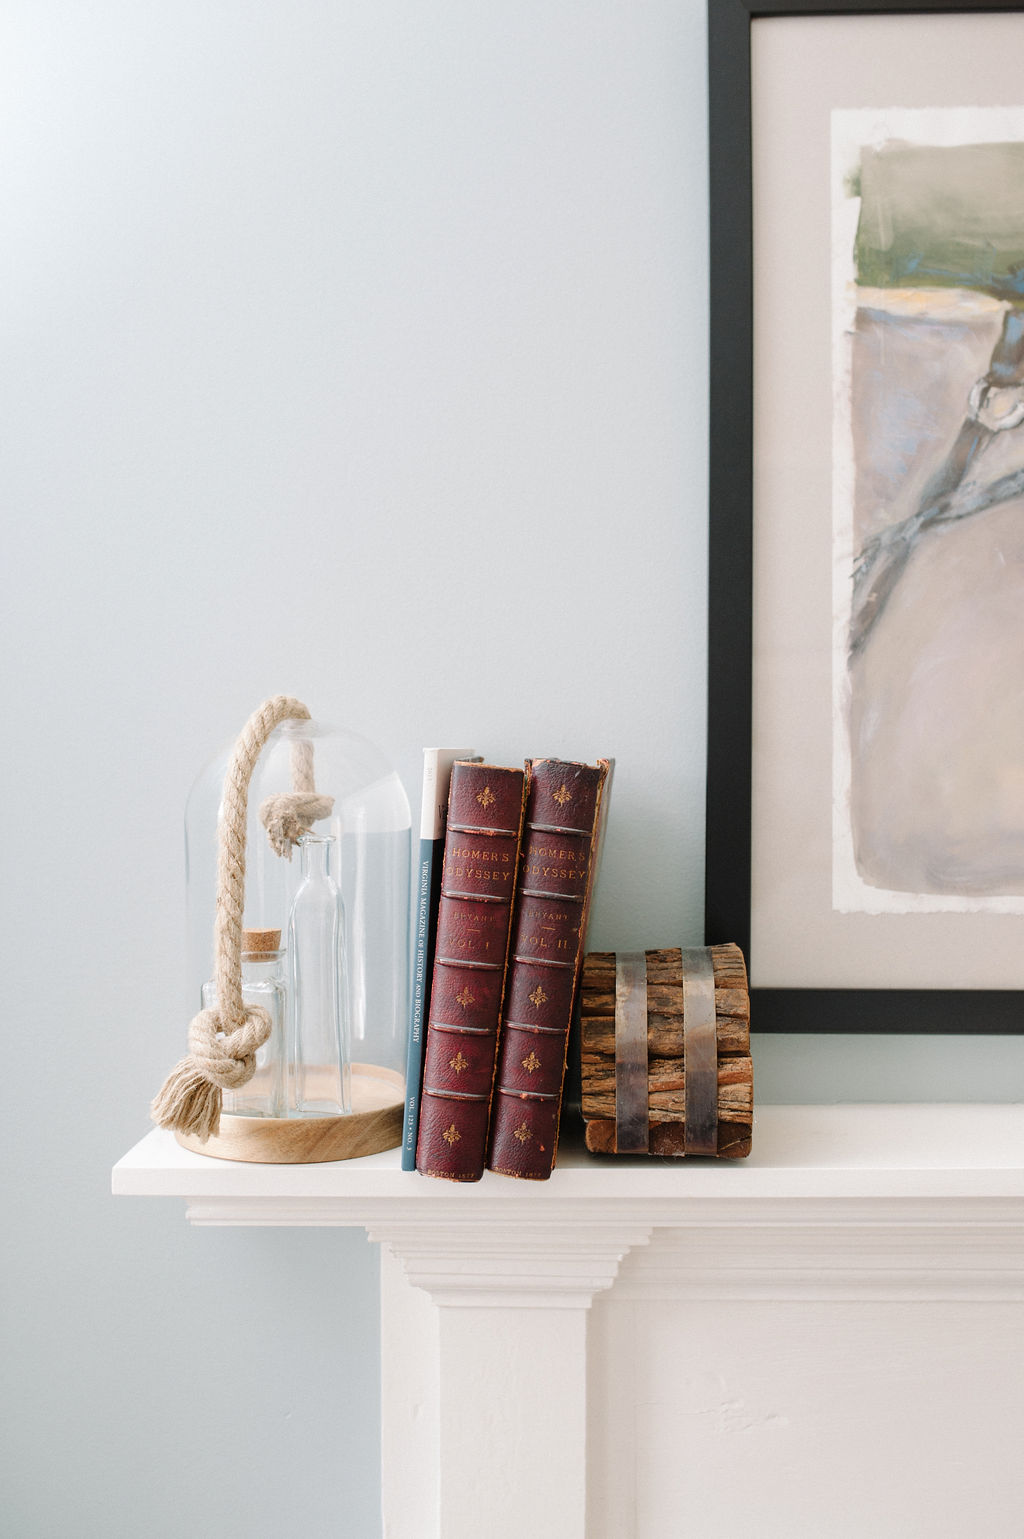 Detail of sculpture and books on white traditional mantlepiece in Room 7